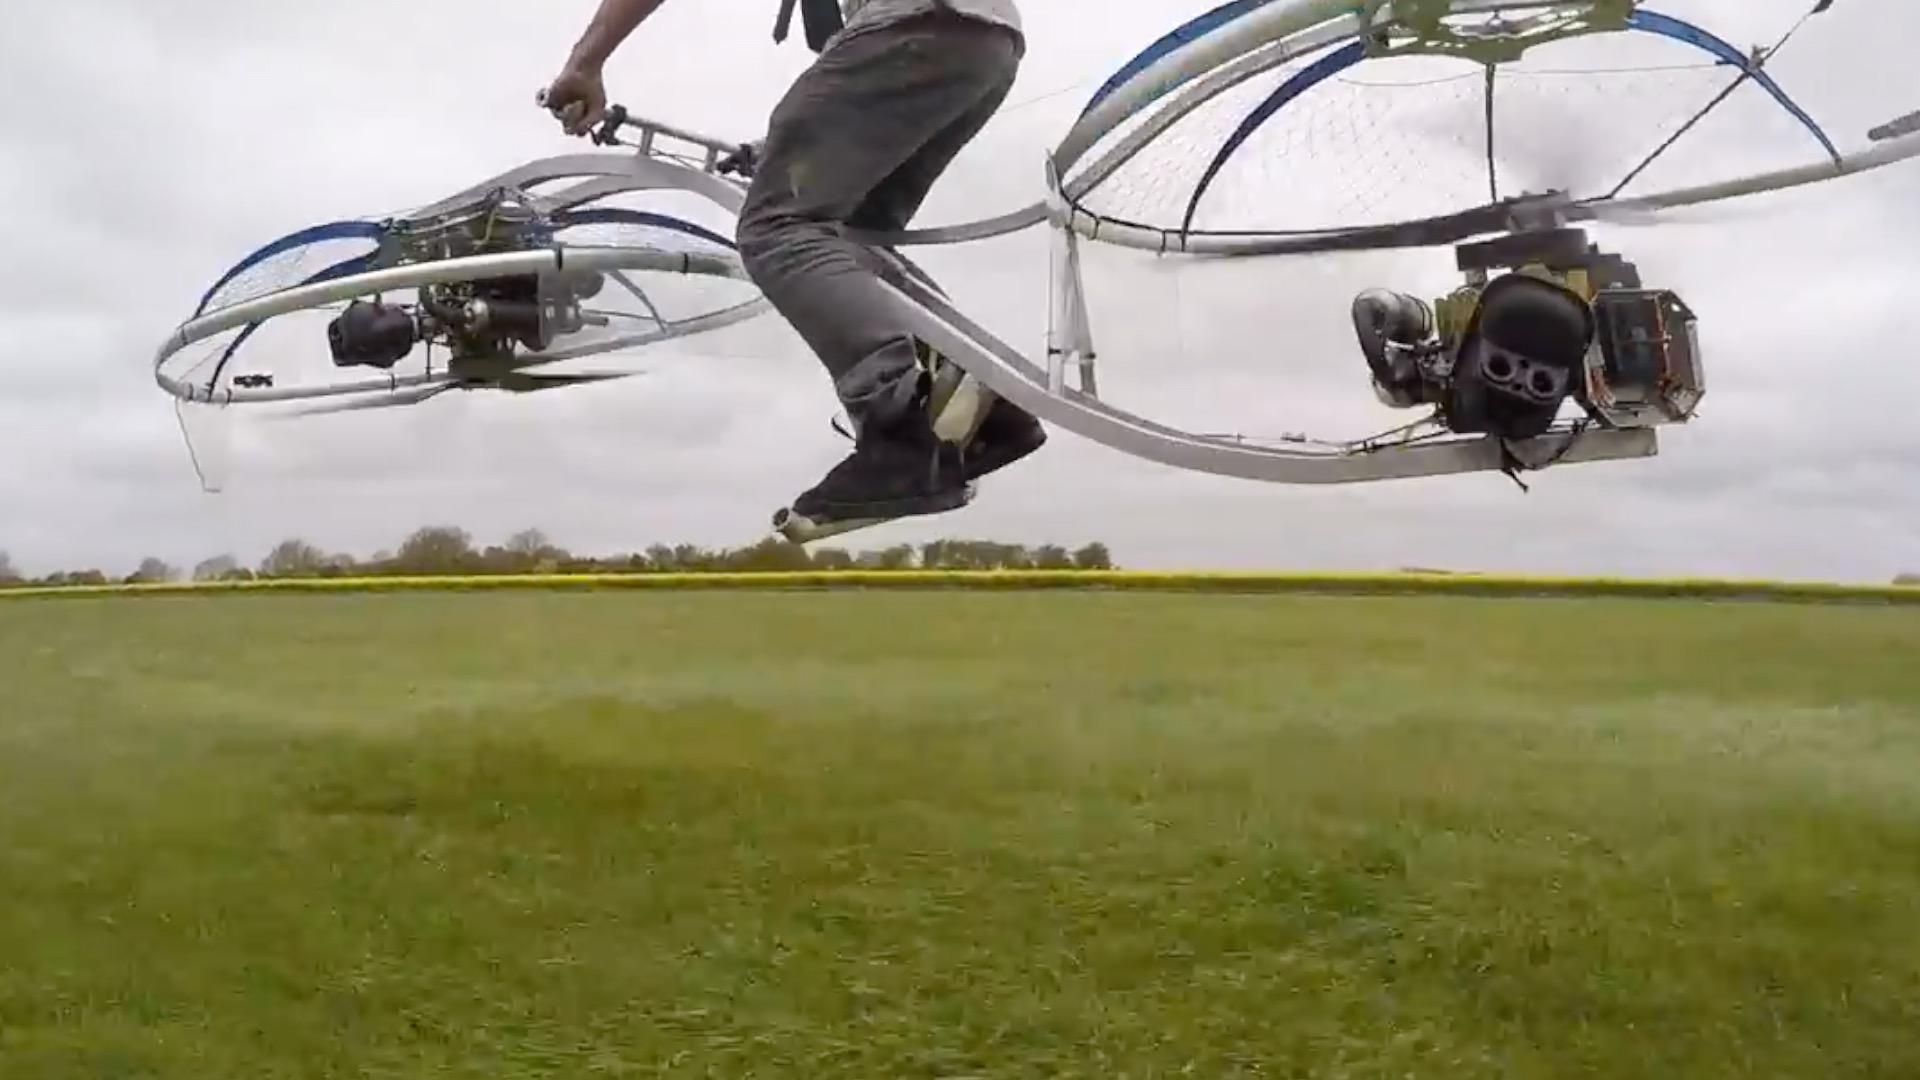 This Plumber Made a Working Hoverbike